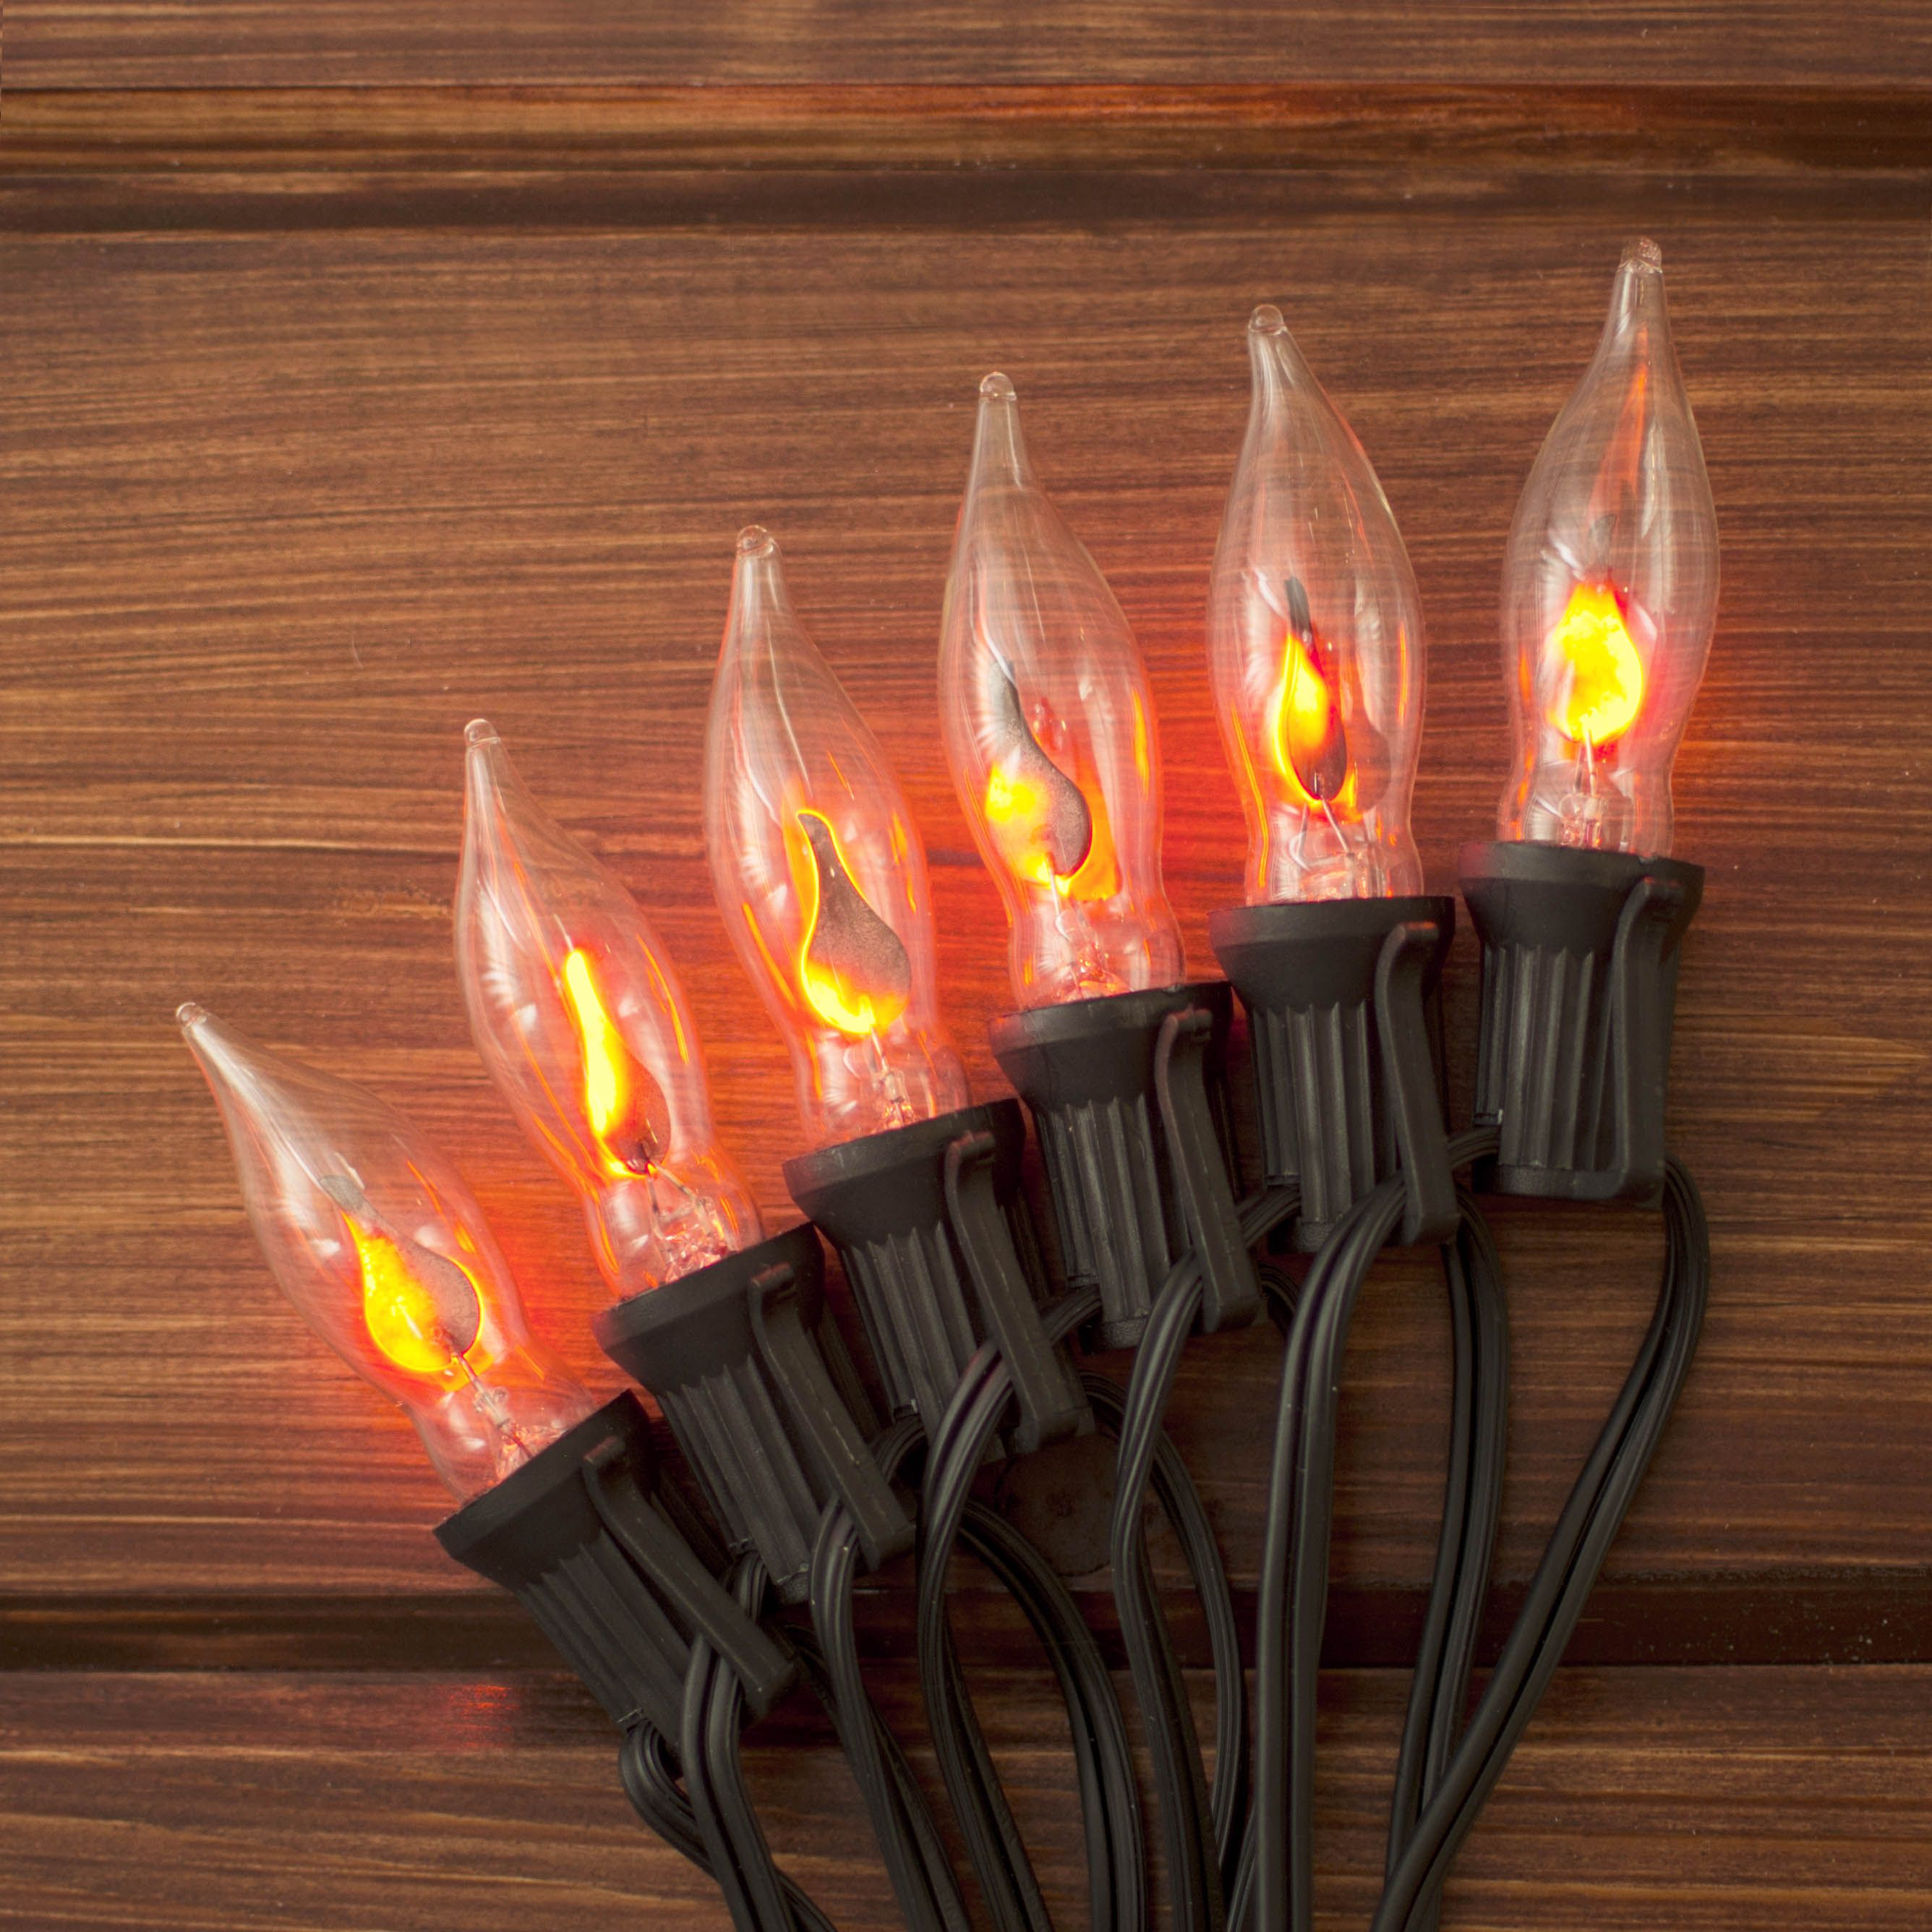 Porch Light Flickers When Off: Our Flickering Flame String Lights Add A Realistic Glow To